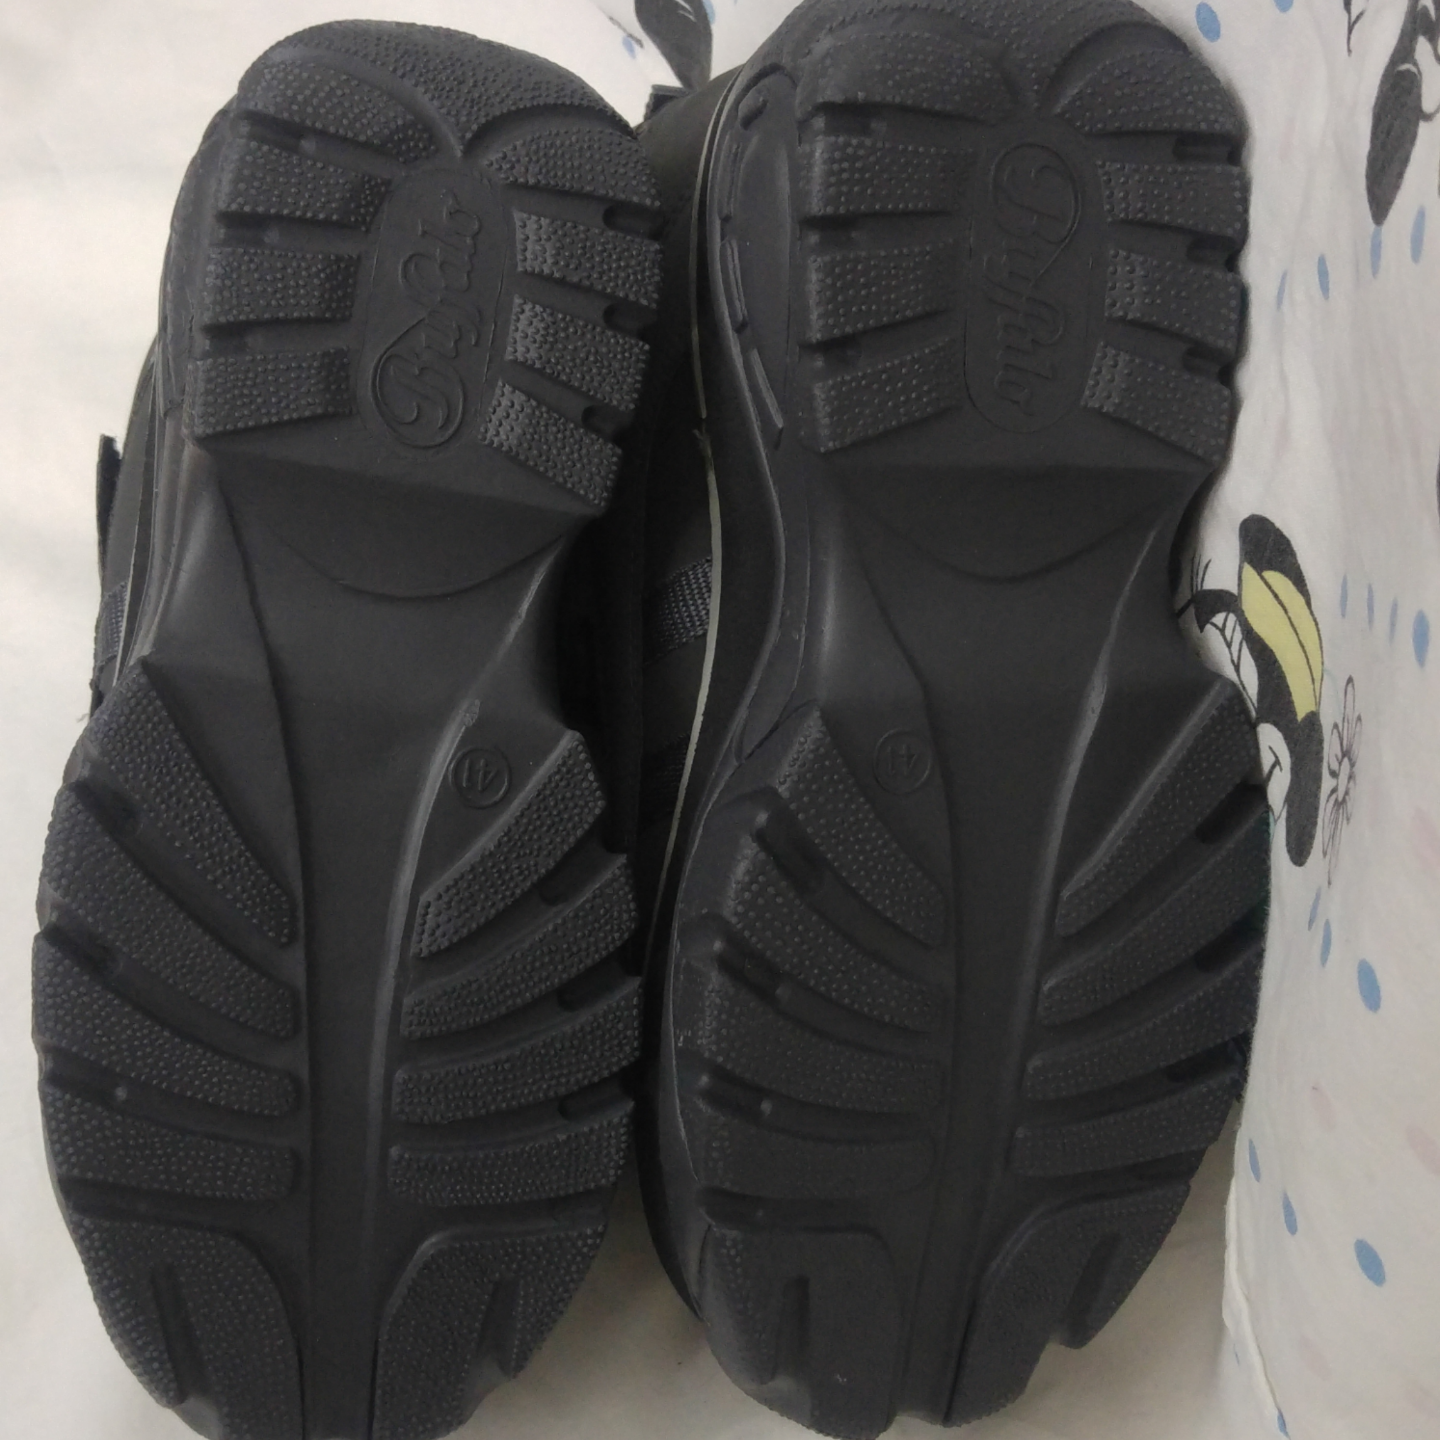 SO FUTURE Unused Buffalo shoes, shipping is included in the price! 90% sure they were bought in the 90s. What is so unique about these is that they are lined with super-soft fake fur, have never seen this before!. Skor.